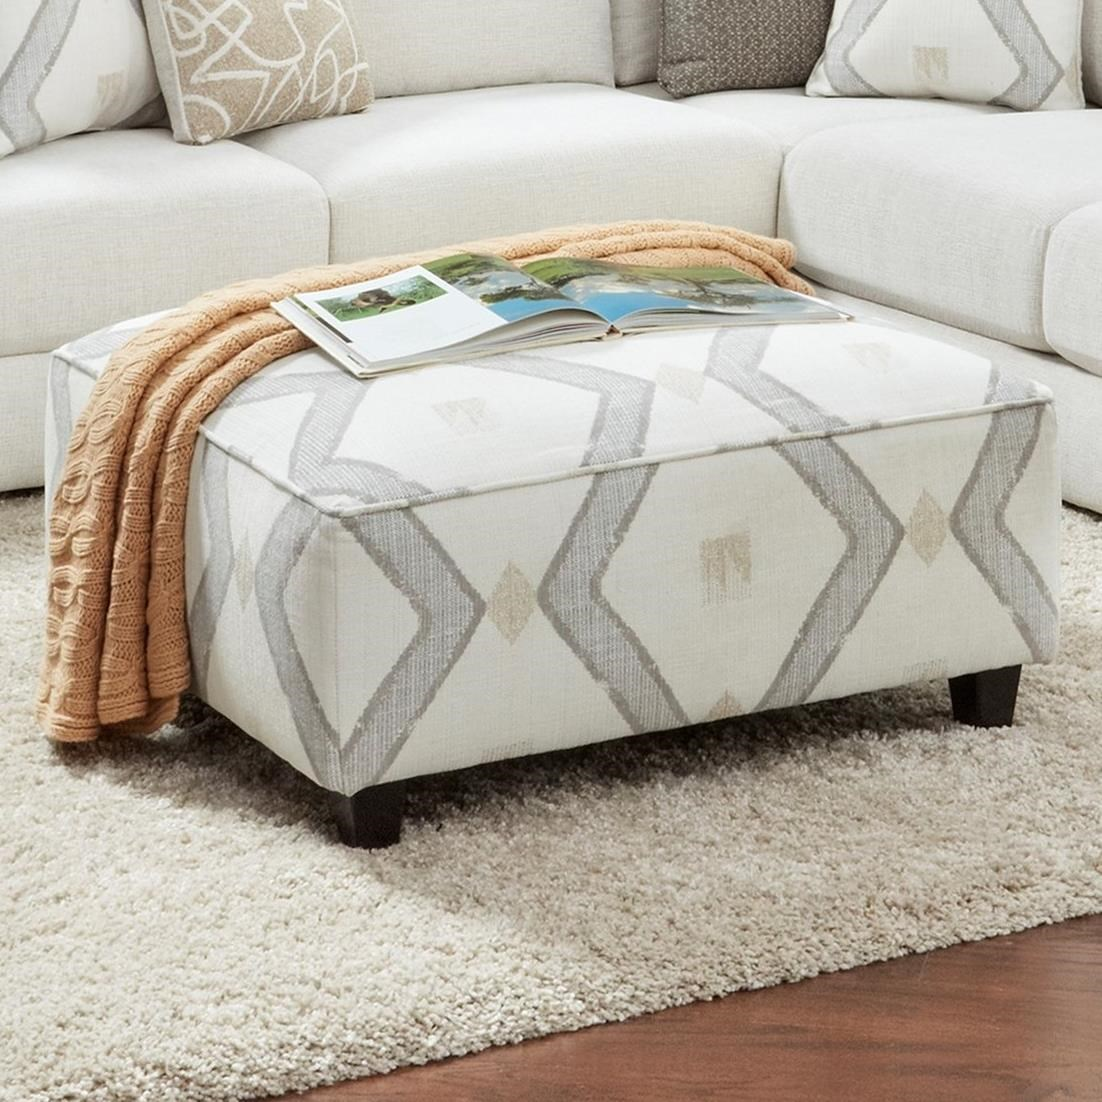 109 Square Ottoman by Fusion Furniture at Story & Lee Furniture